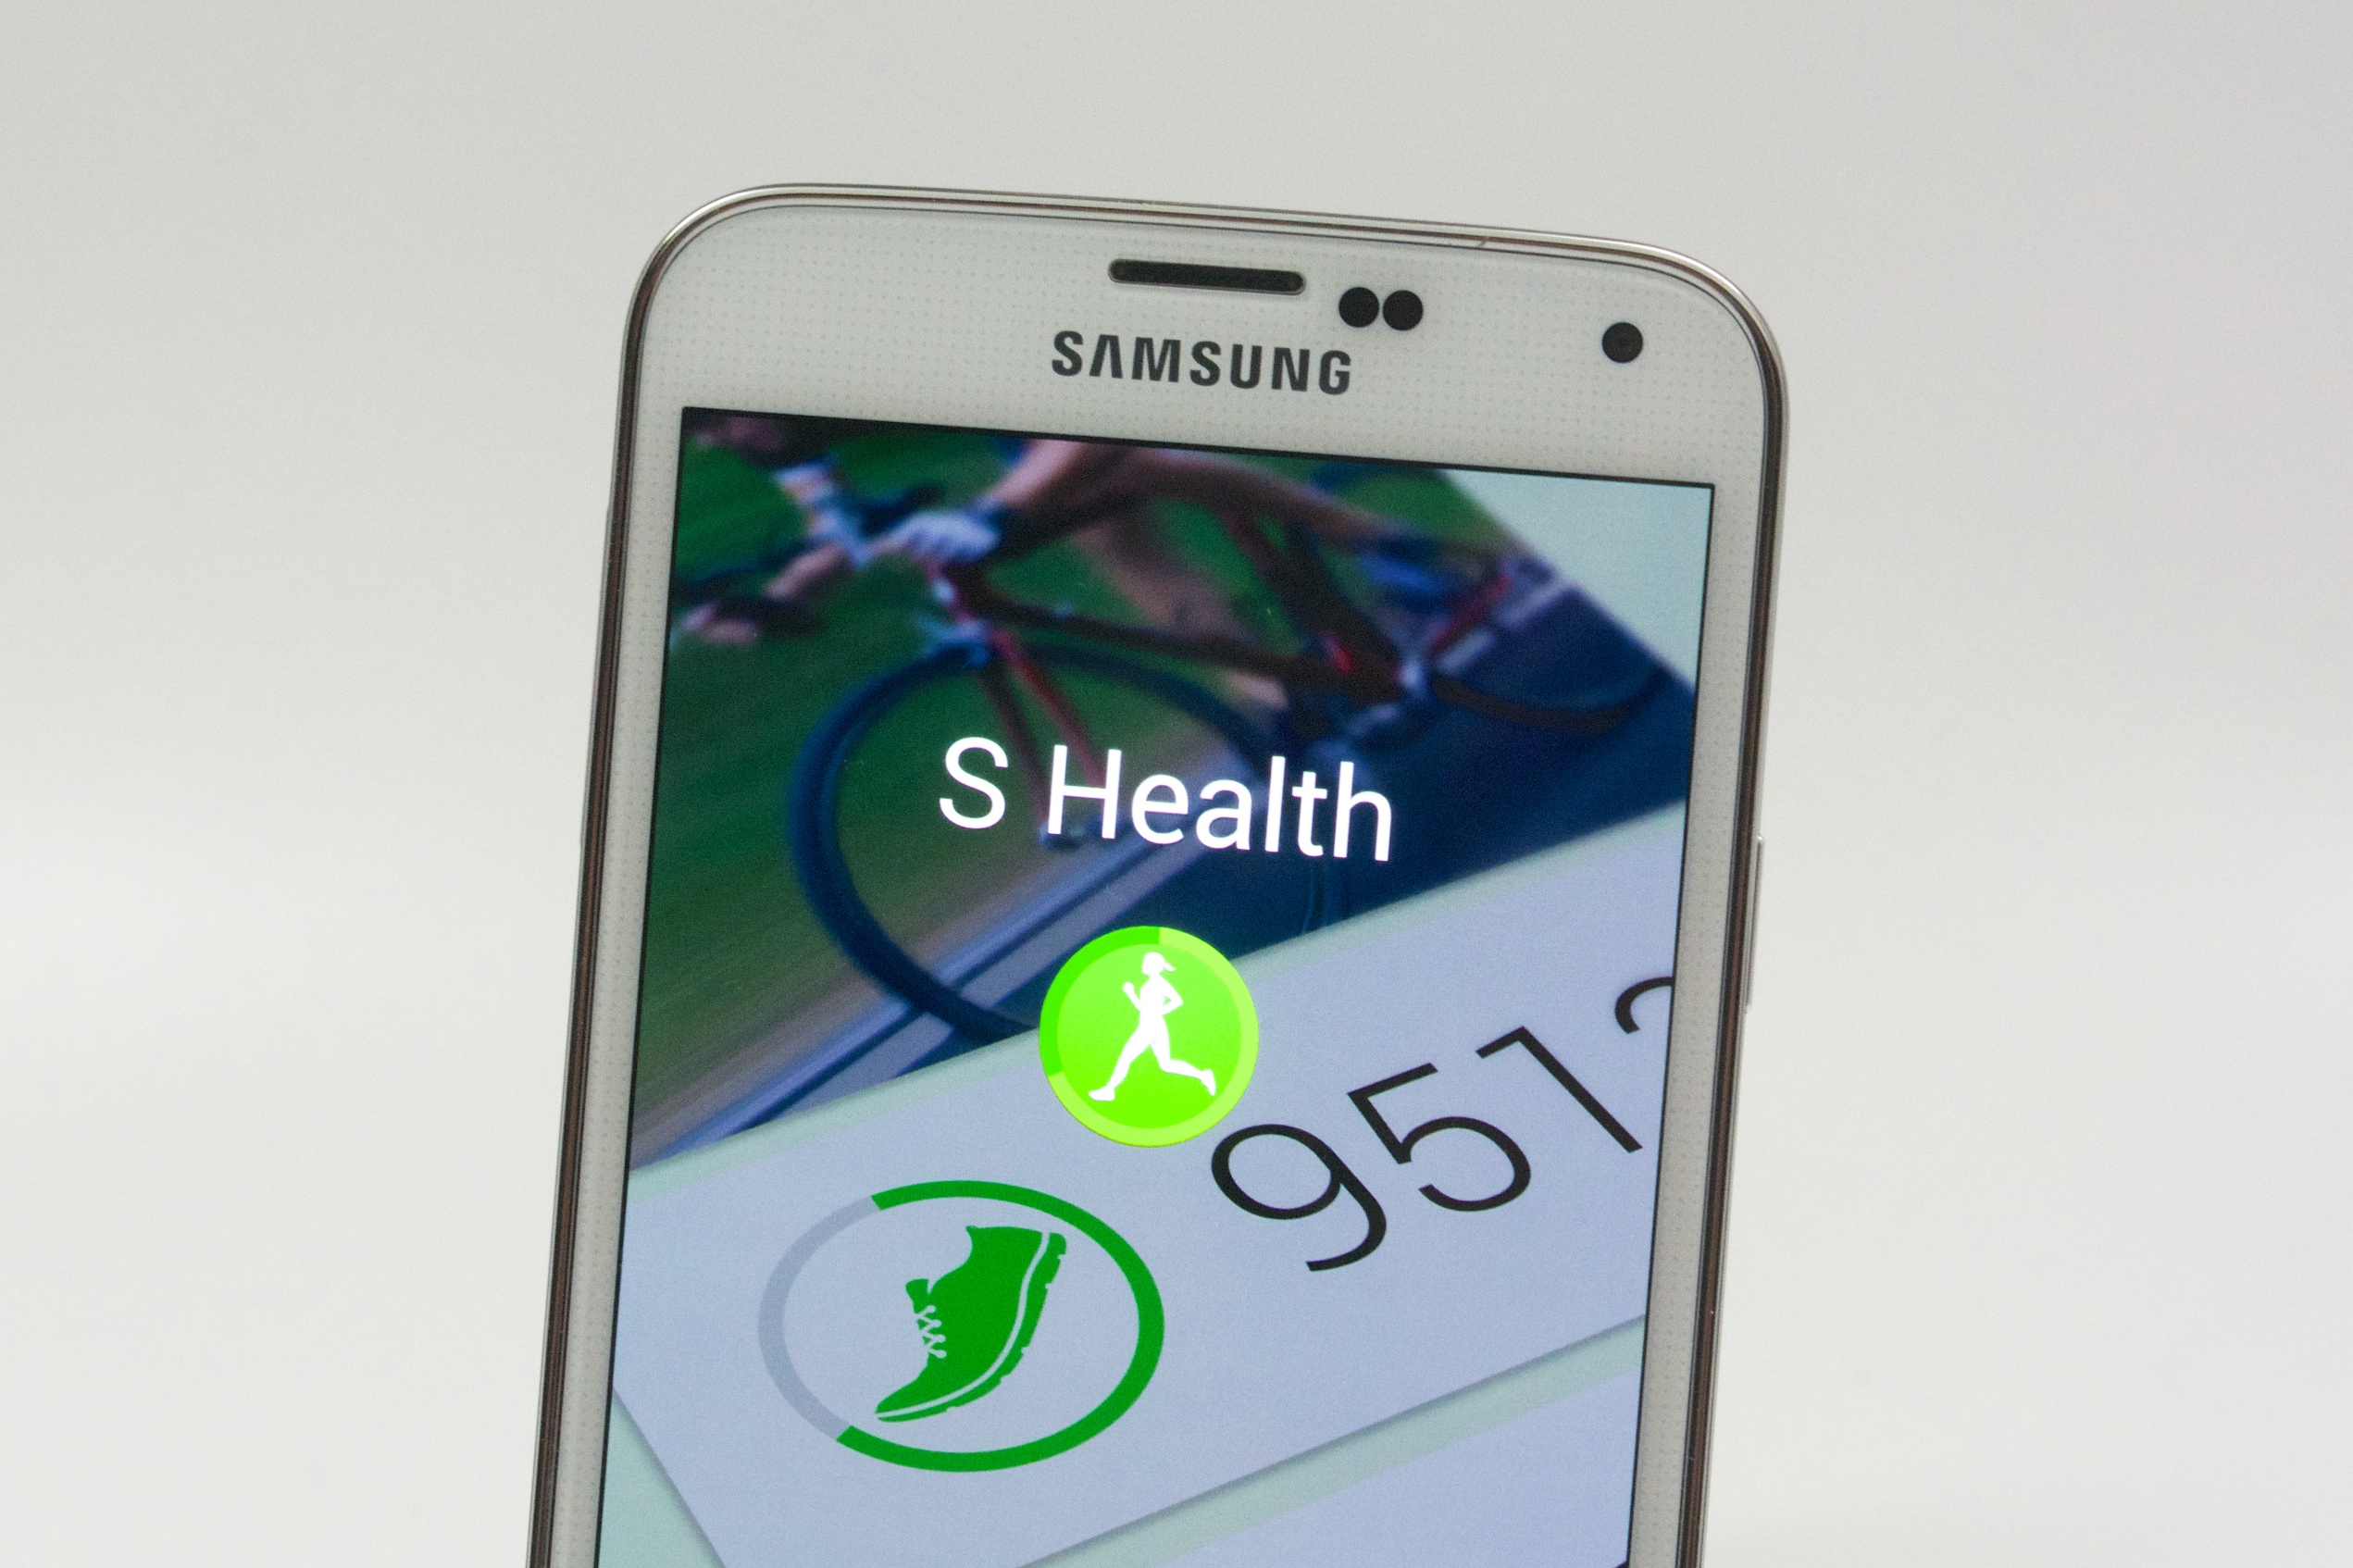 S Health is a built-in health tracking app that can use the Galaxy S5 heart rate sensor and connect to accessories like the Gear Fit.